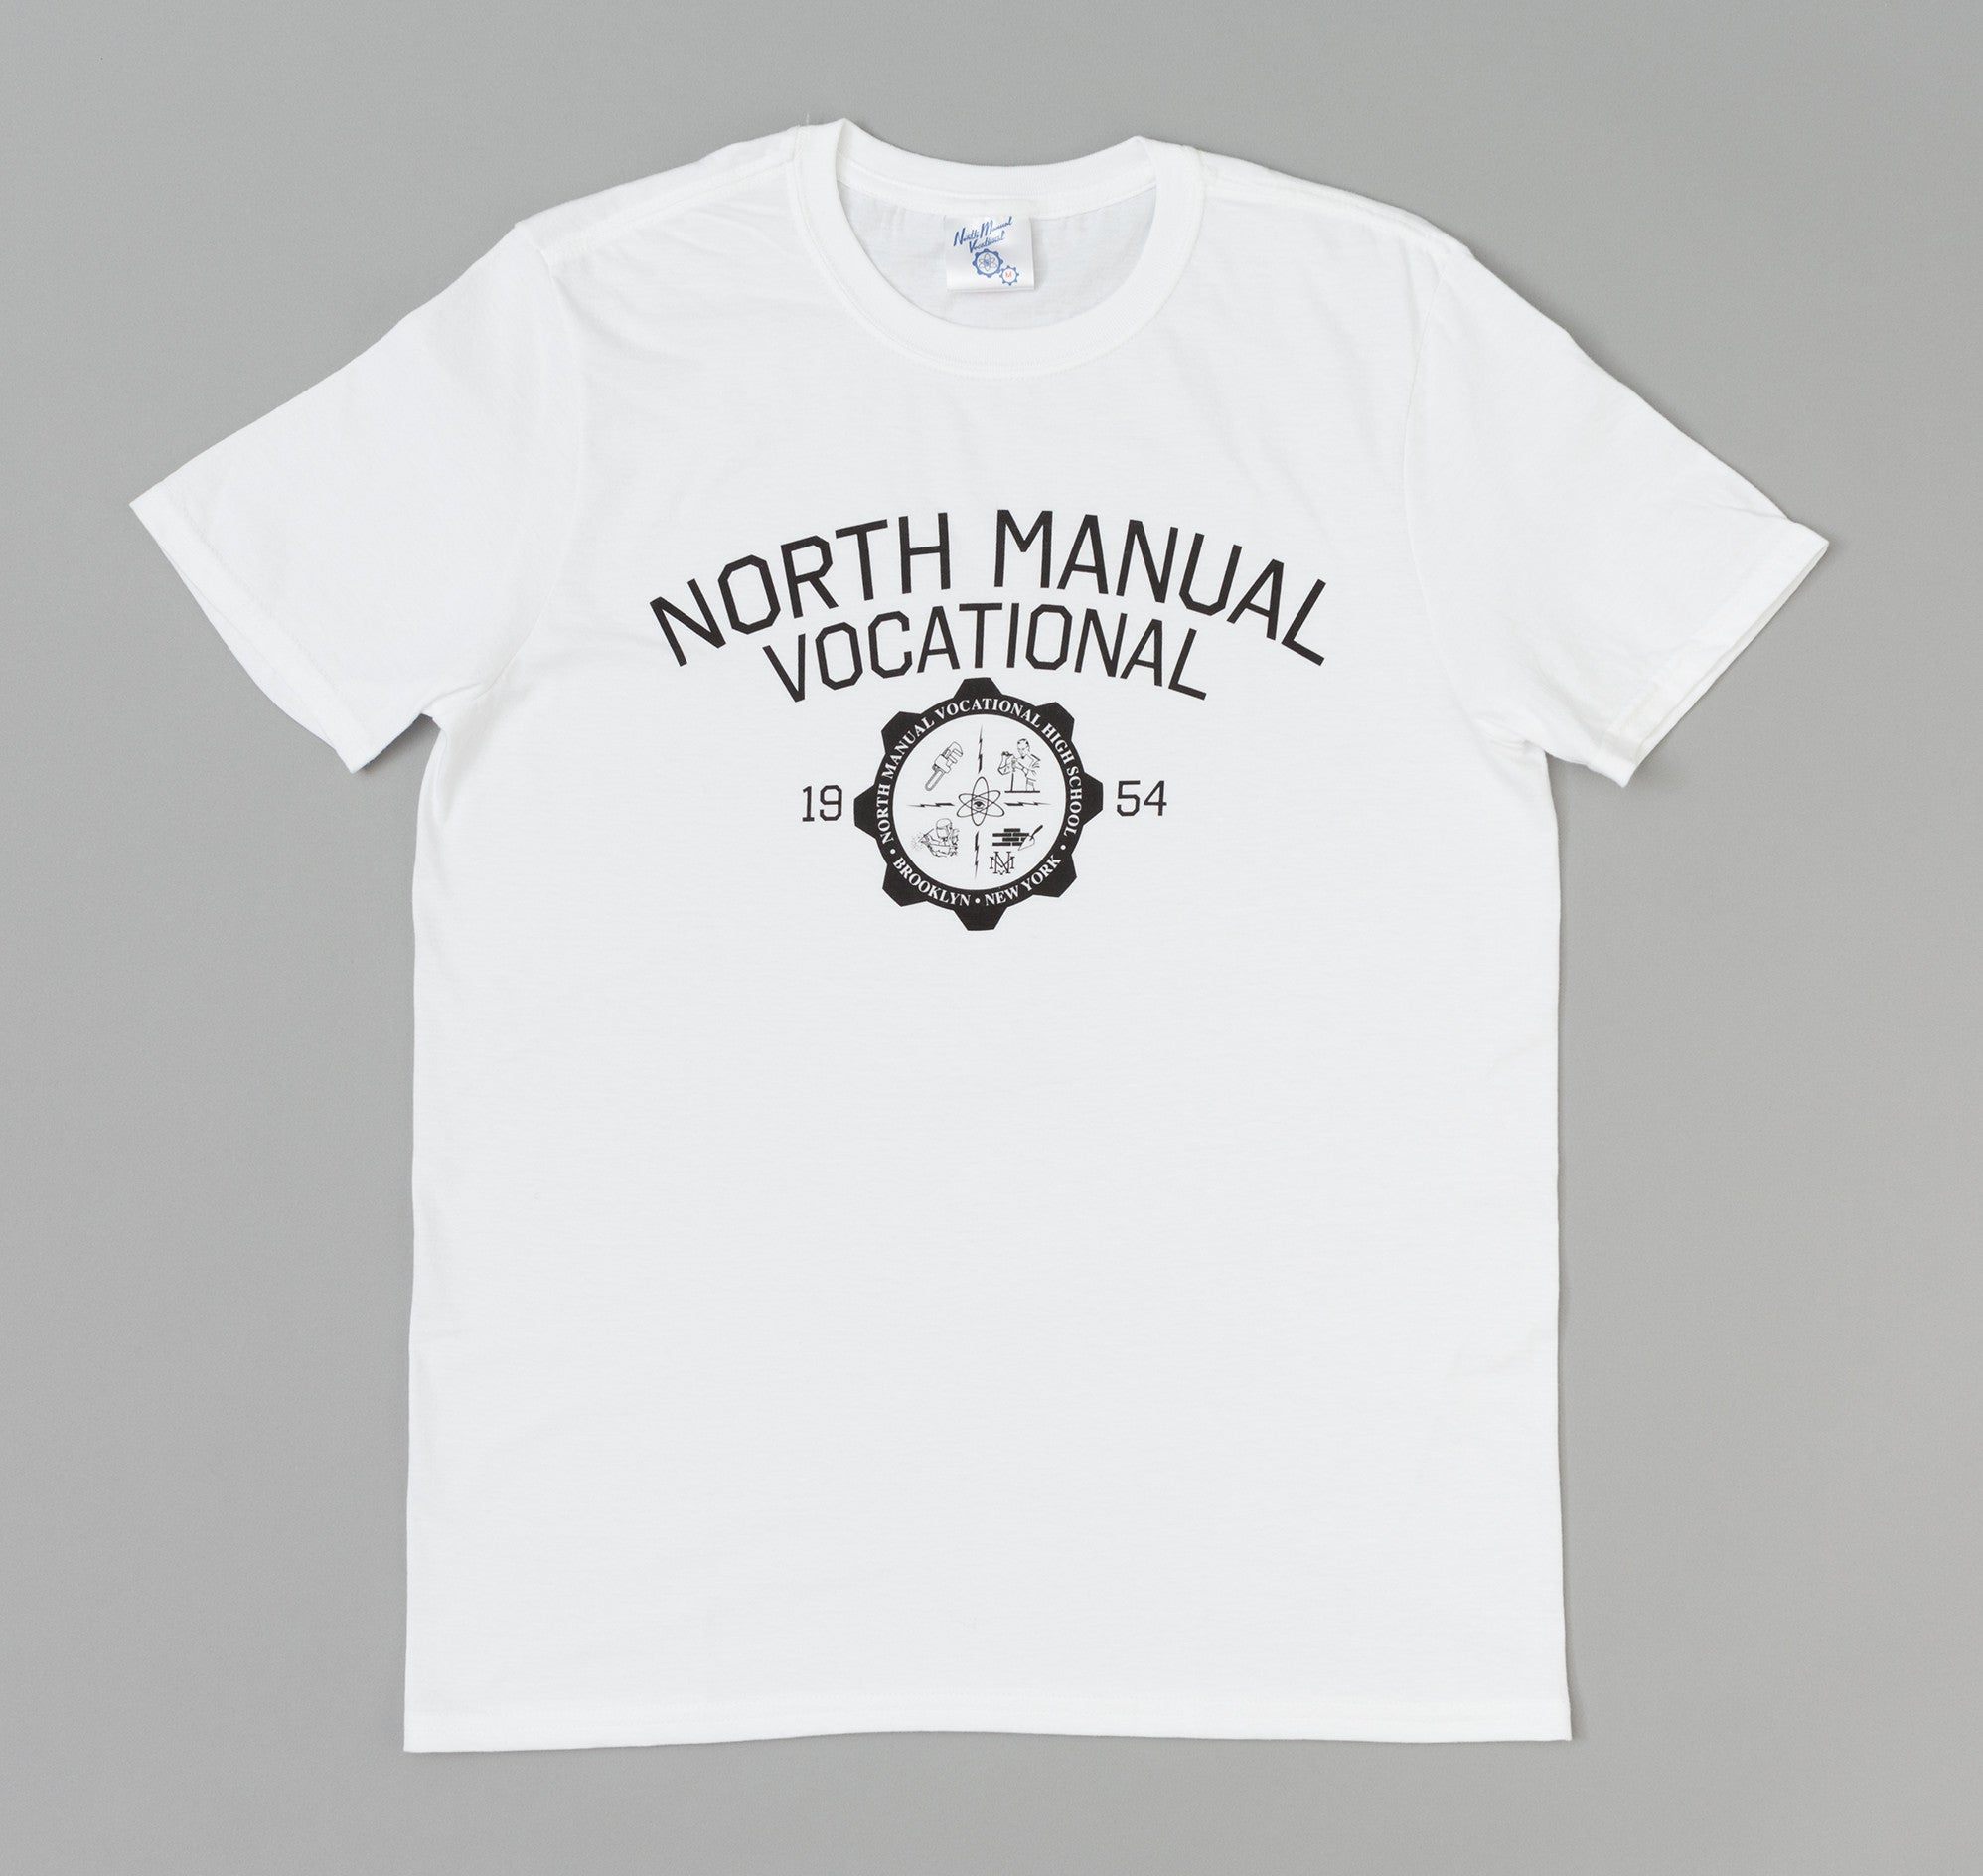 North Manual Vocational Crest T-Shirt, White